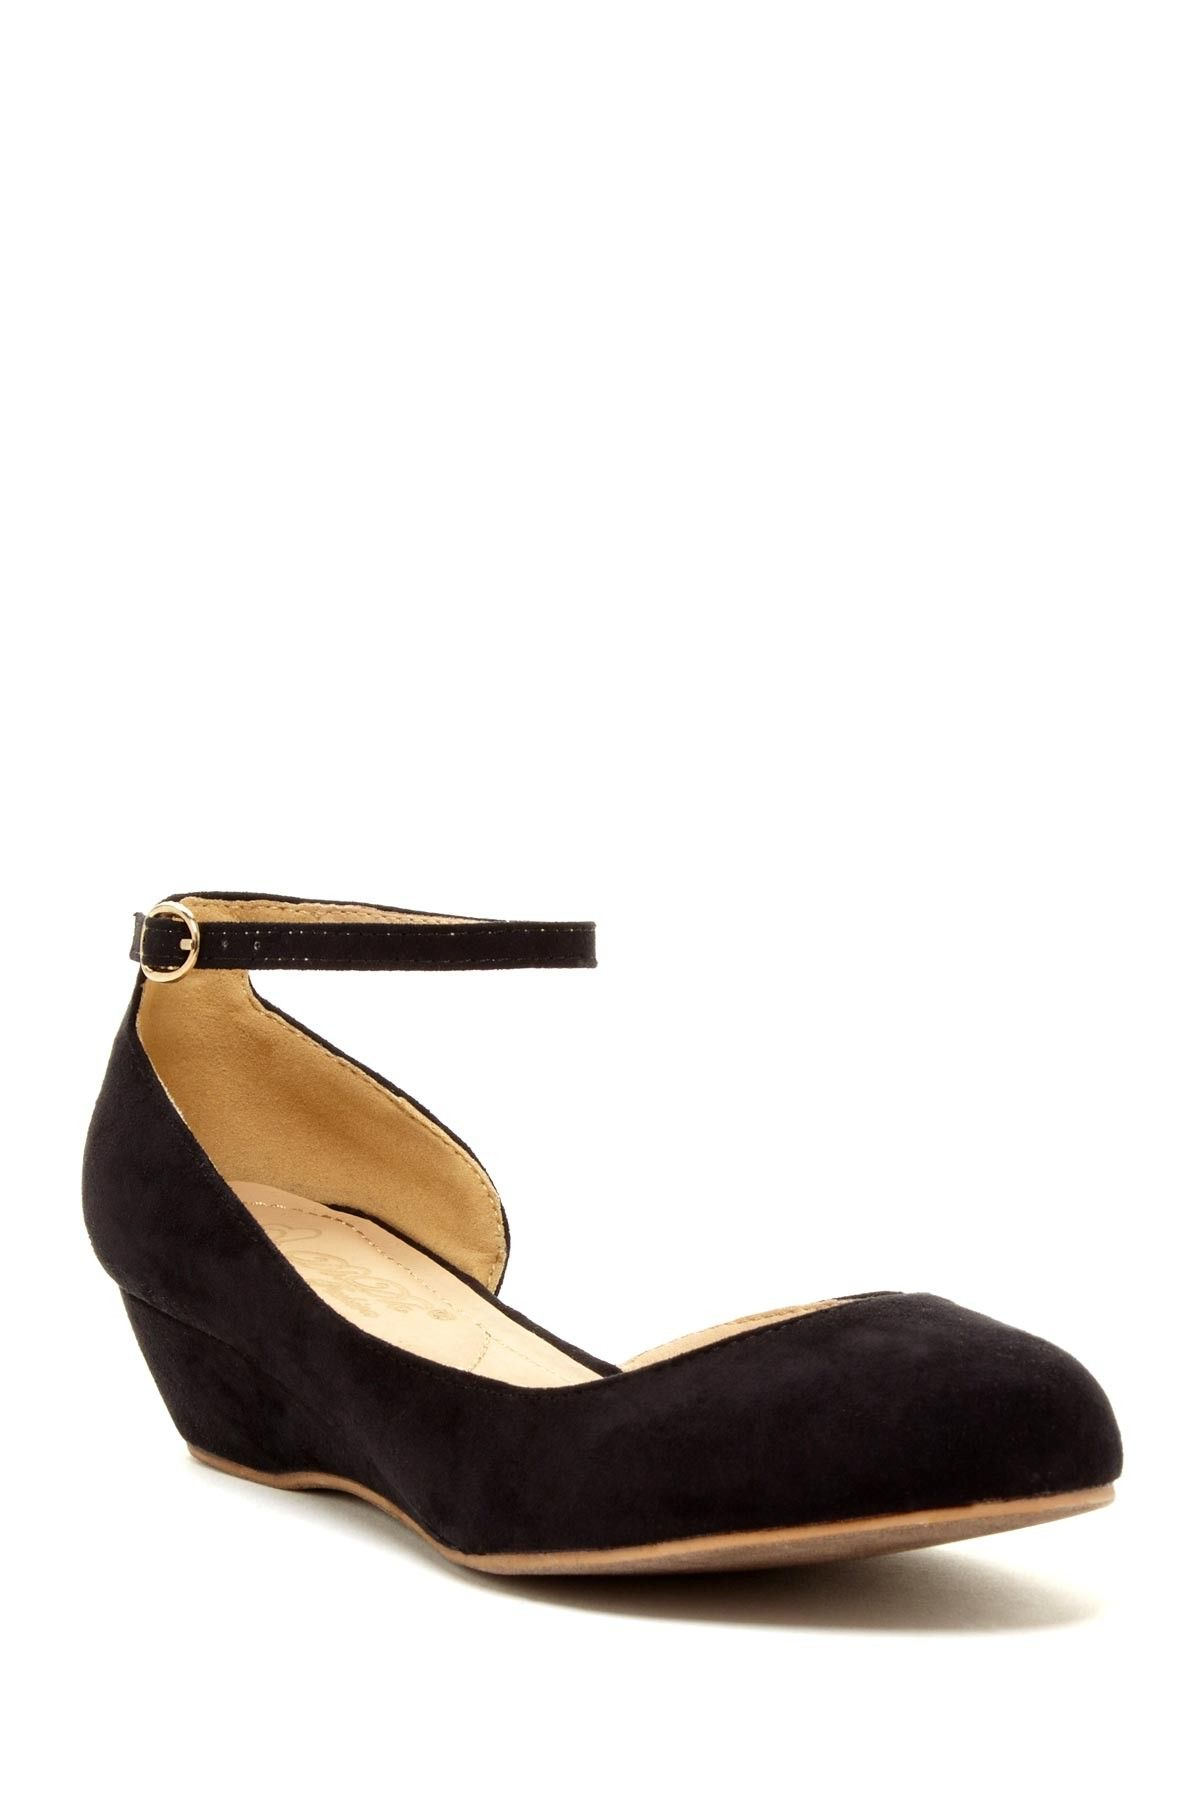 78fad4118 Cisanni Half d-Orsay Wedge on HauteLook Cute Flats